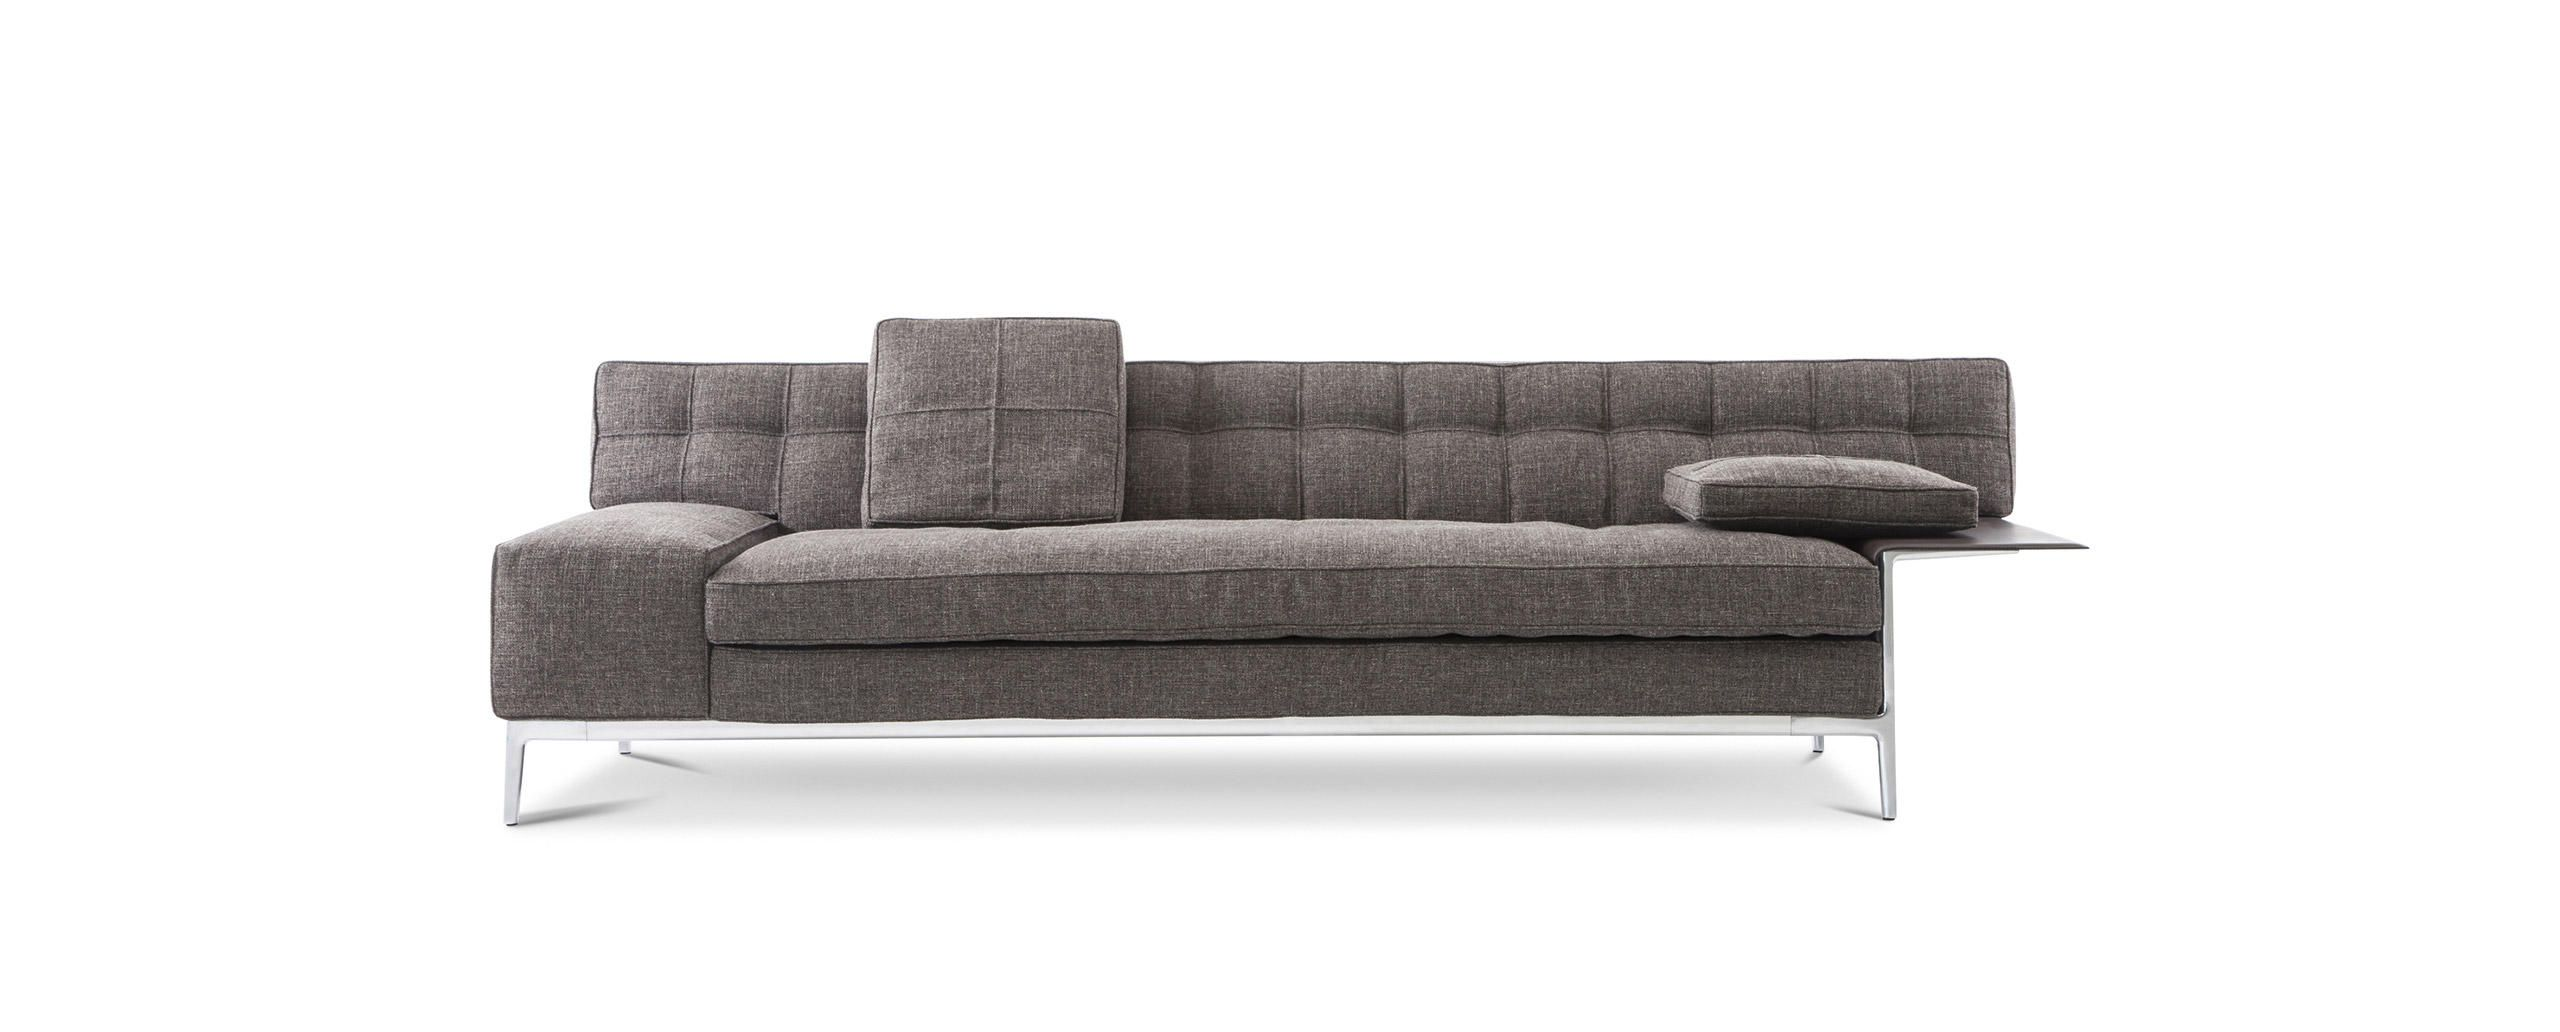 volage exu2014s sofa by philippe starck for cassina